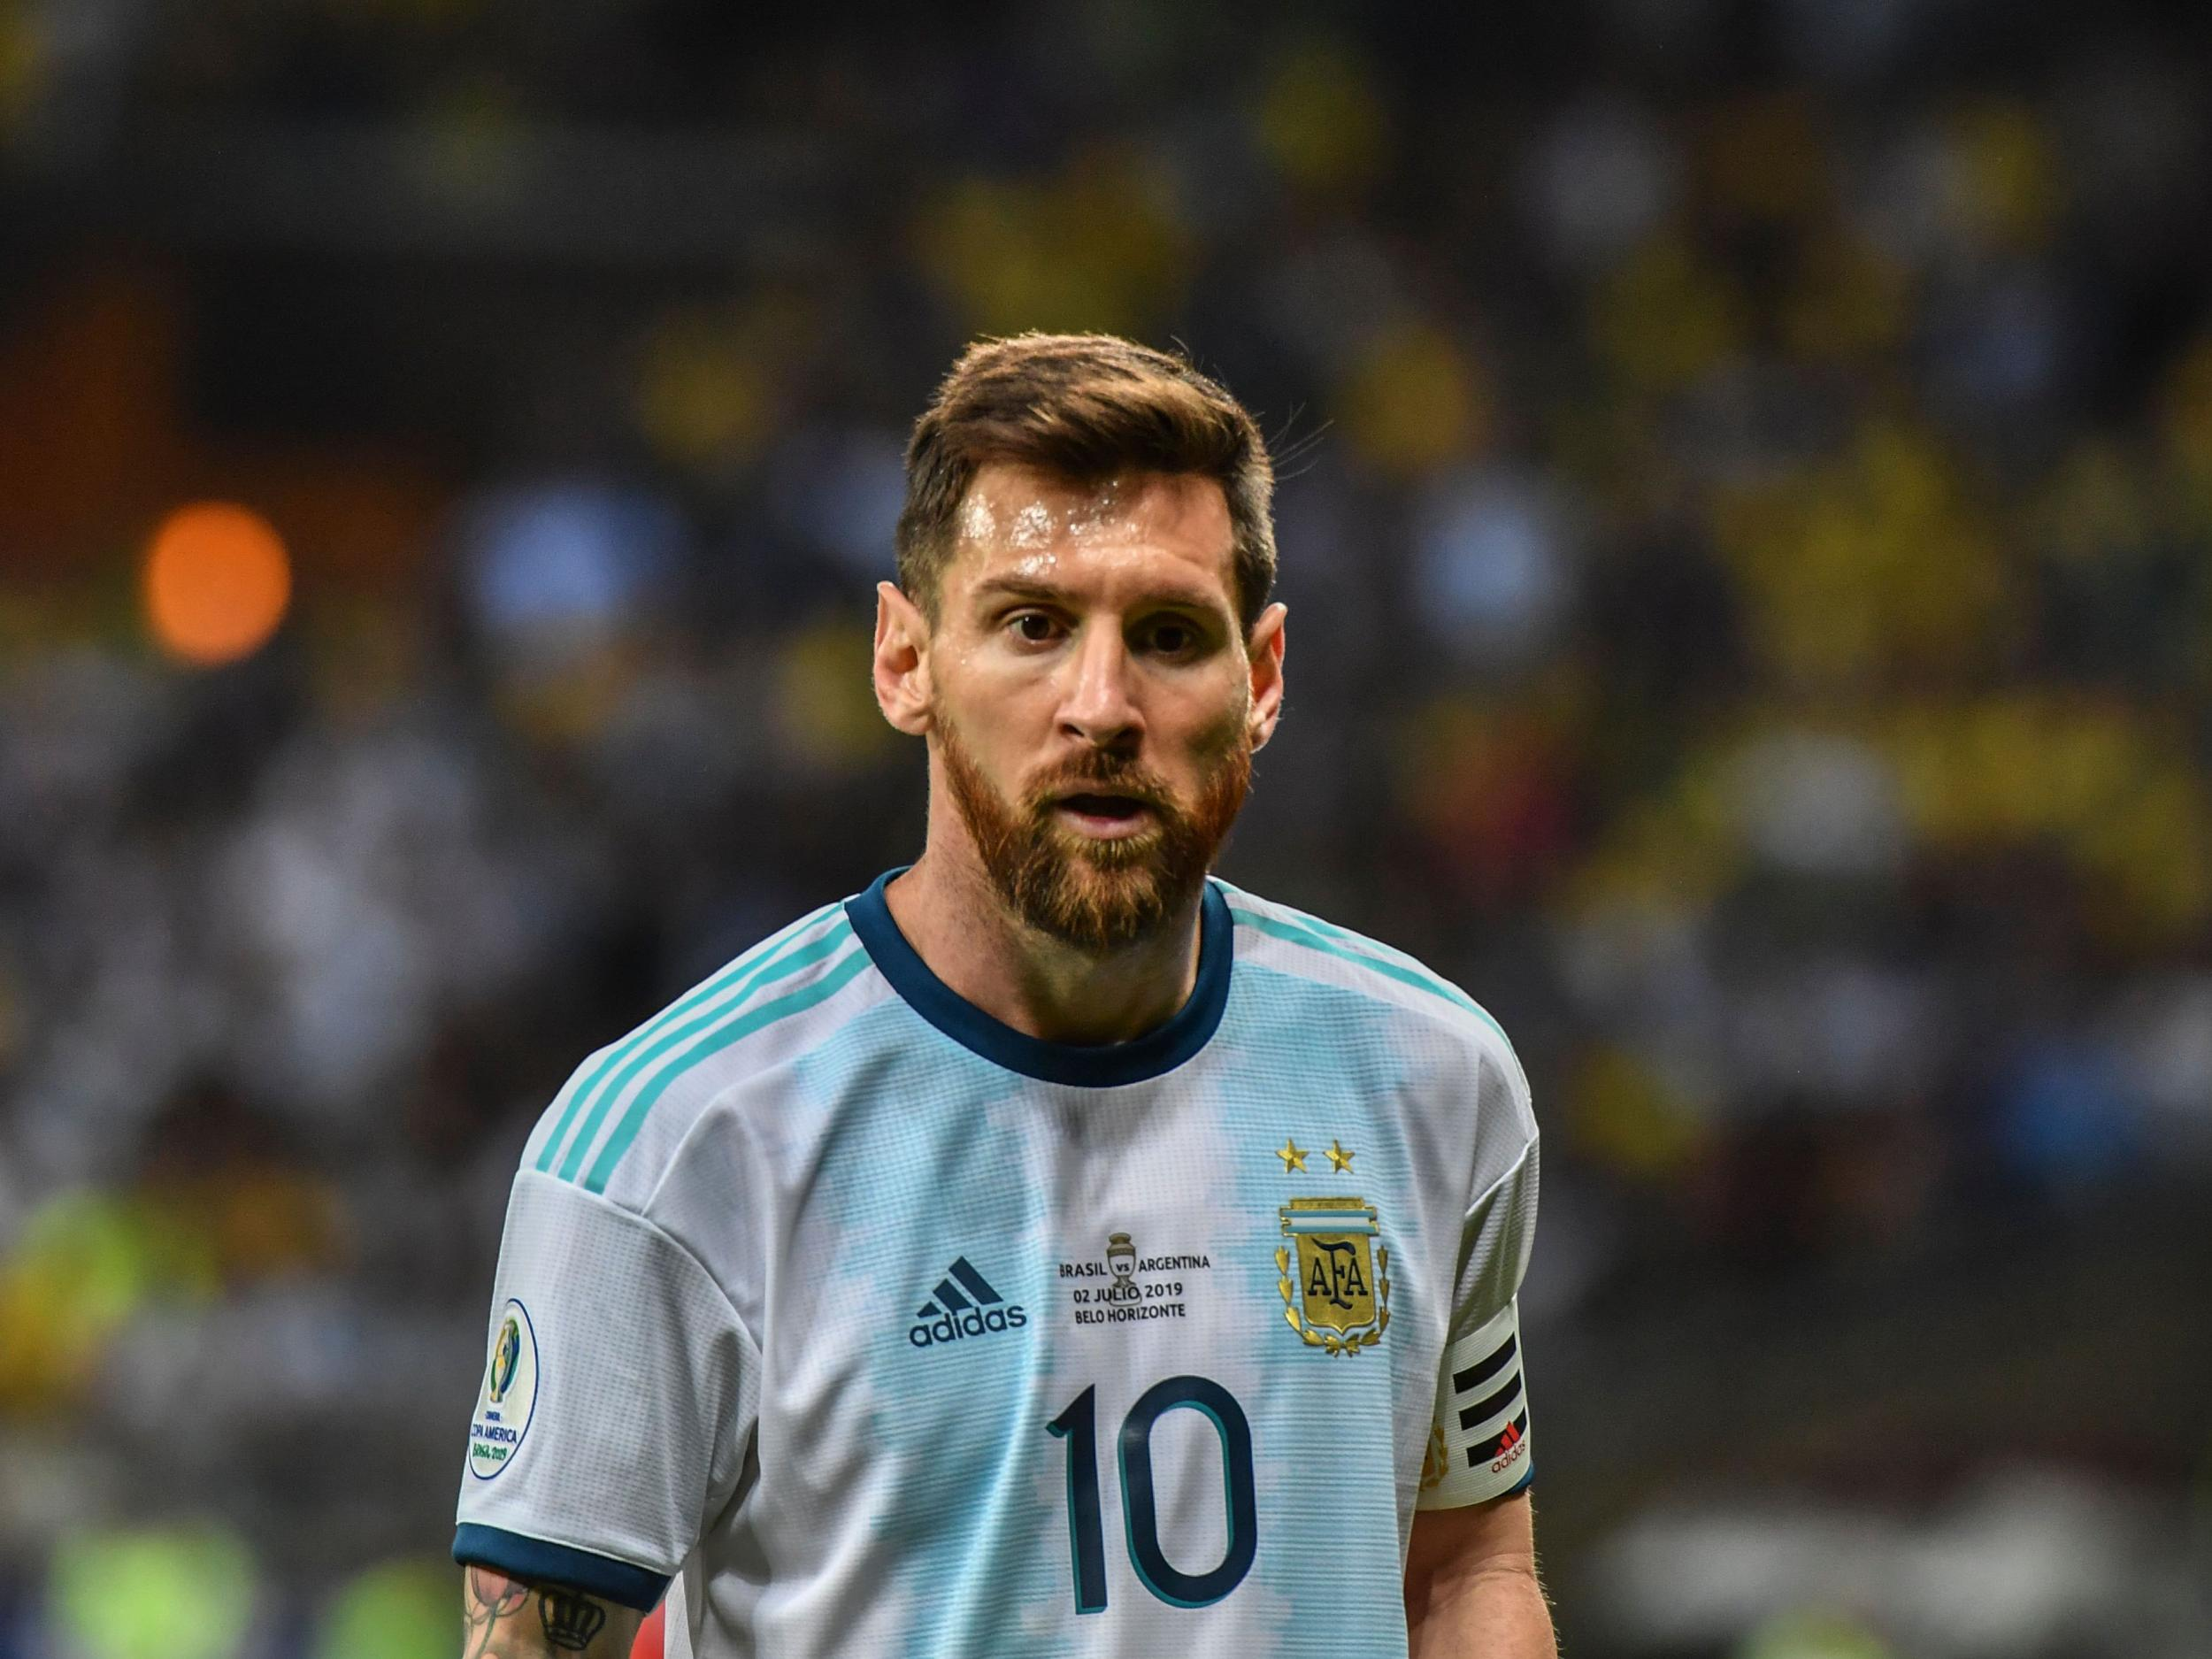 Lionel Messi returns to Argentina squad for friendlies against Brazil and Uruguay after serving three-month ban